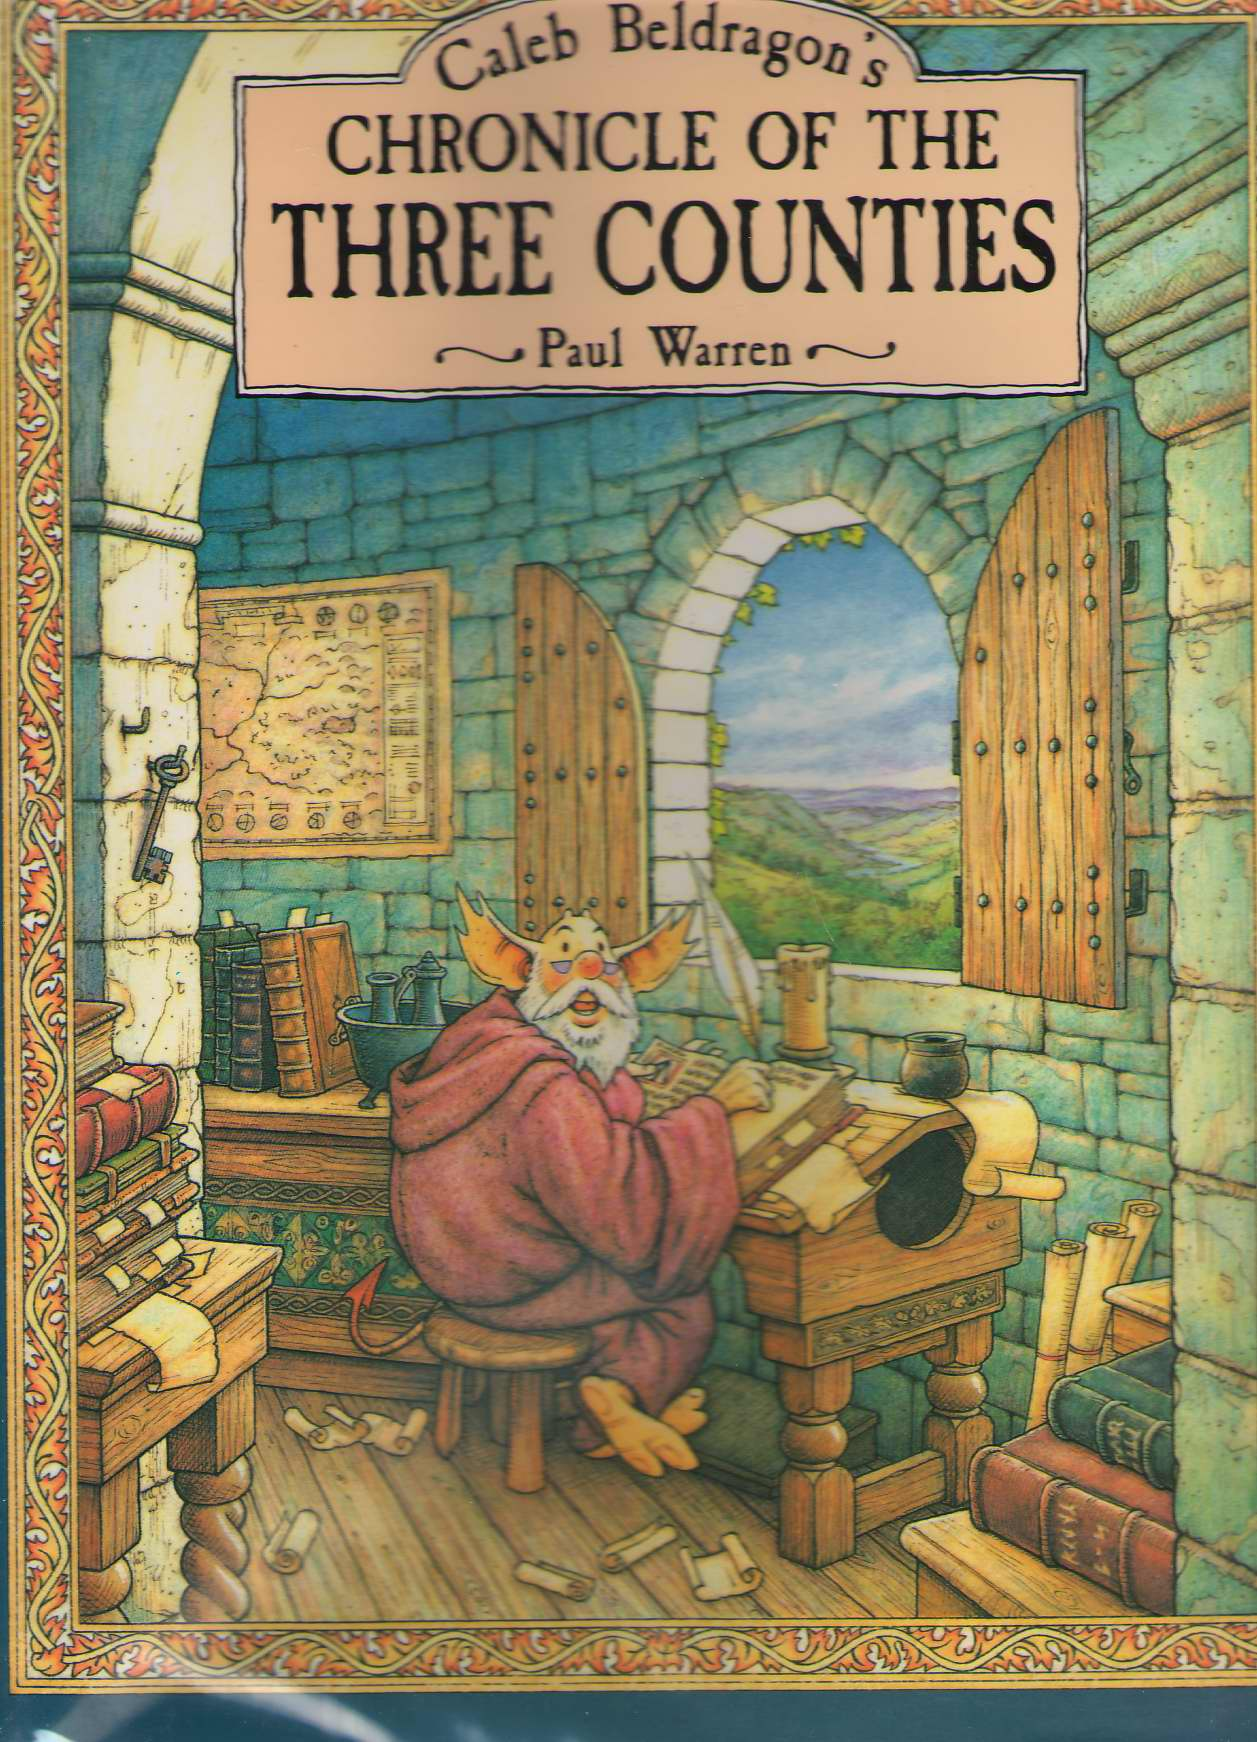 Image for Caleb Beldragon's Chronicle of the Three Counties